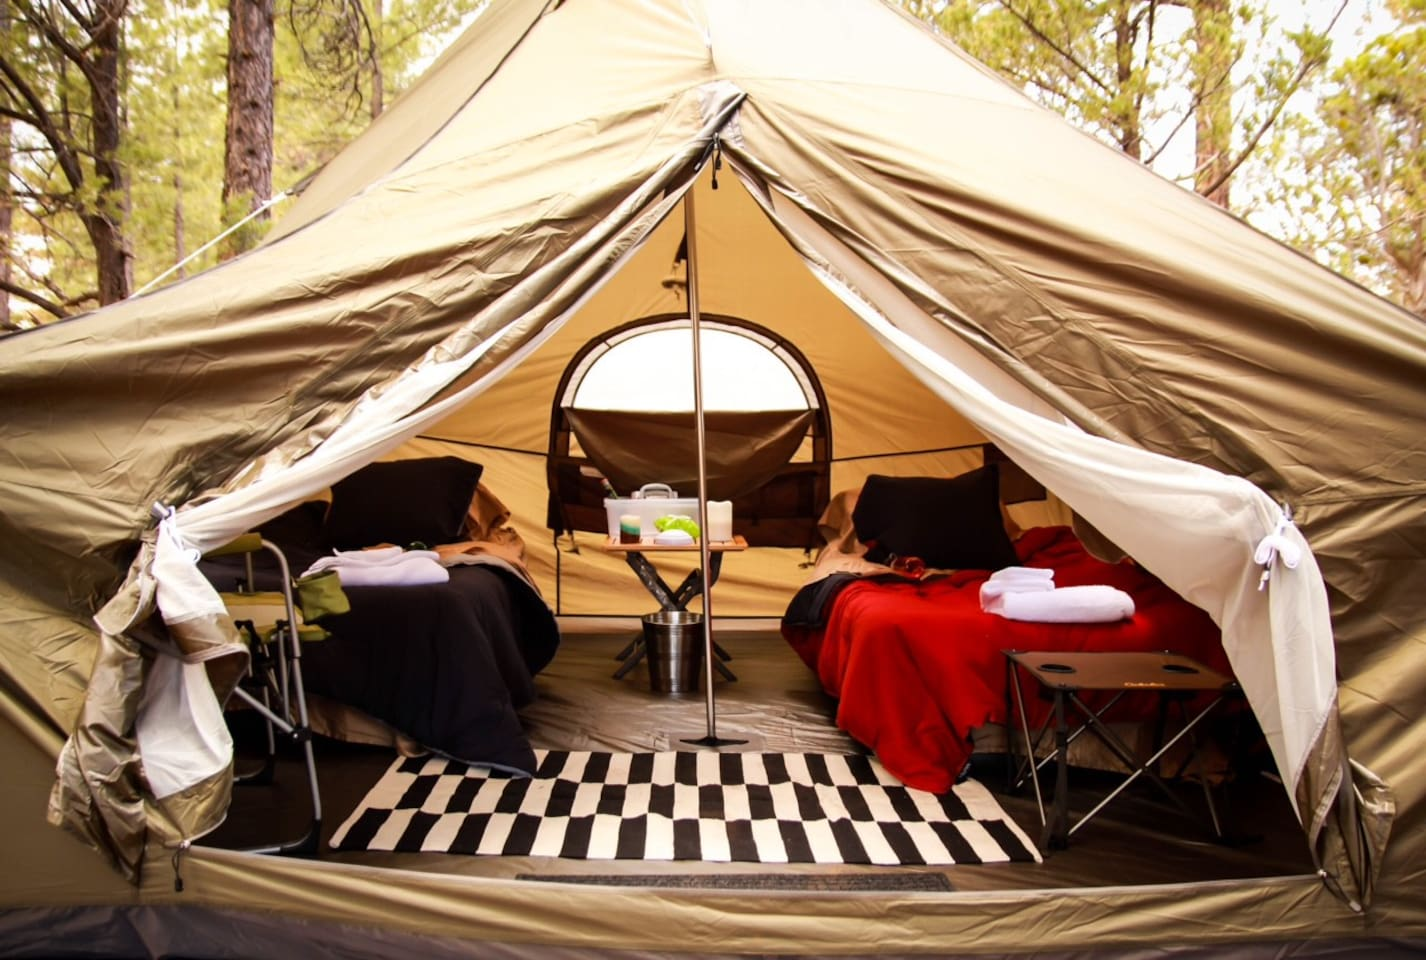 Spacious 8 person Expedition Tents utilized for a couple or kids